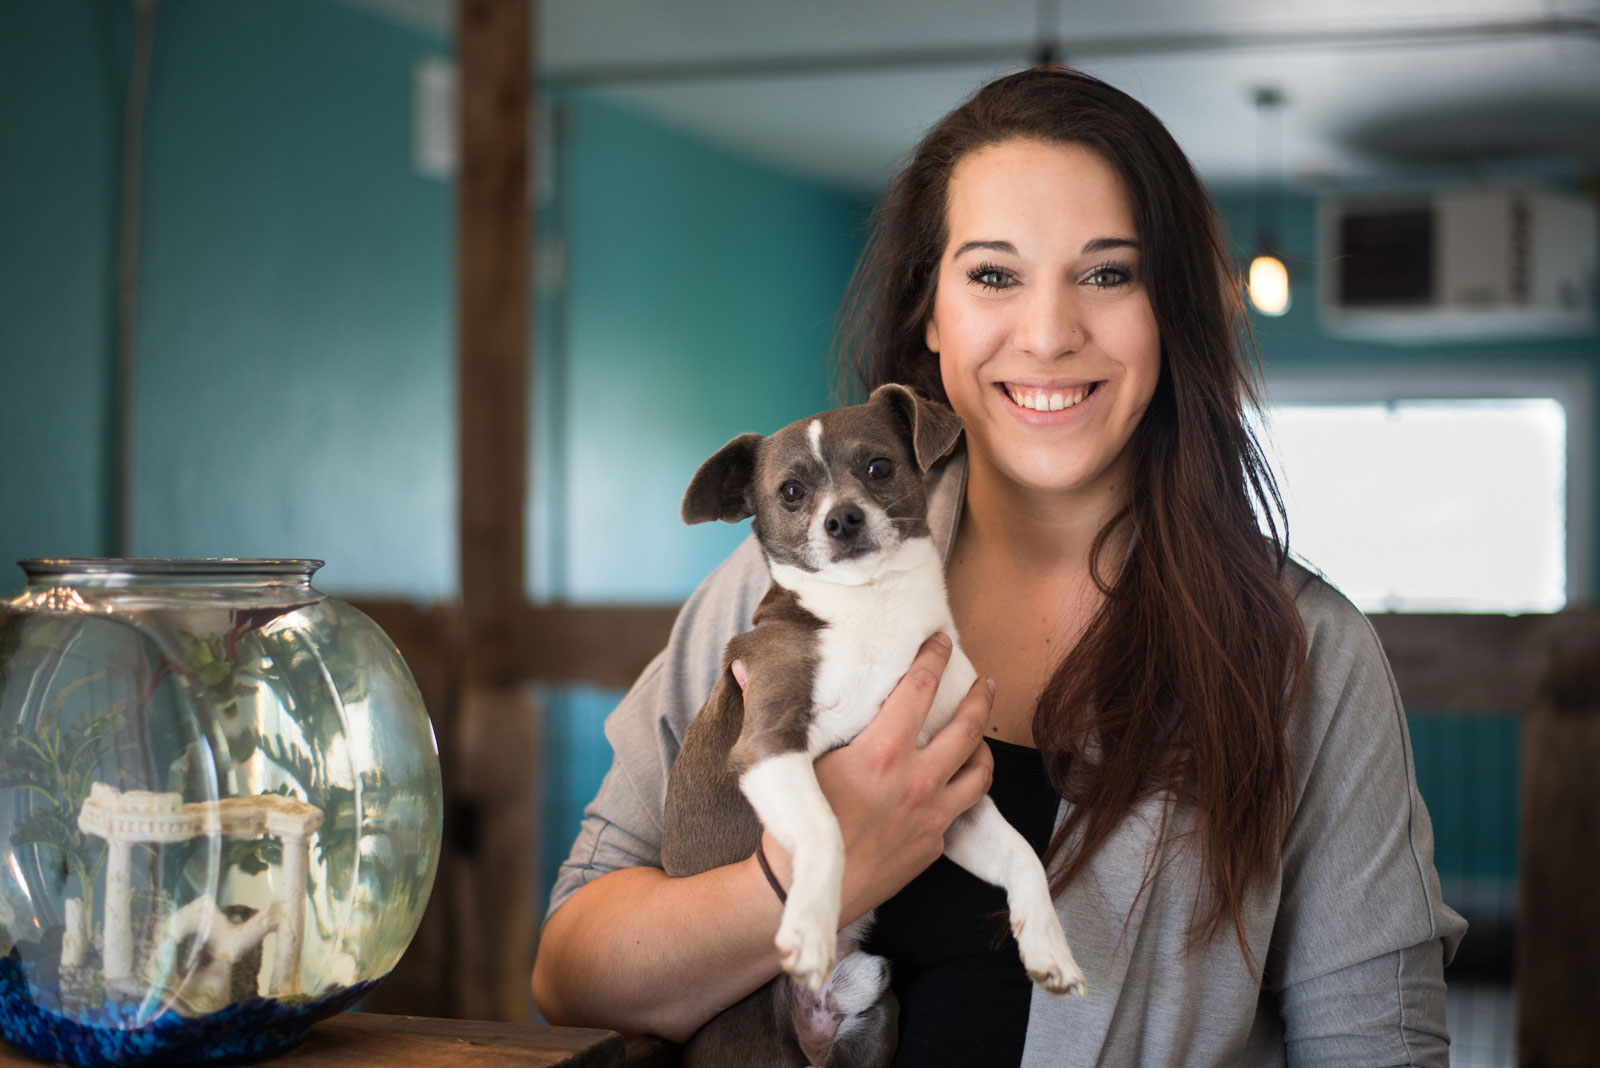 Izy's DogHouse owner posing with small dog